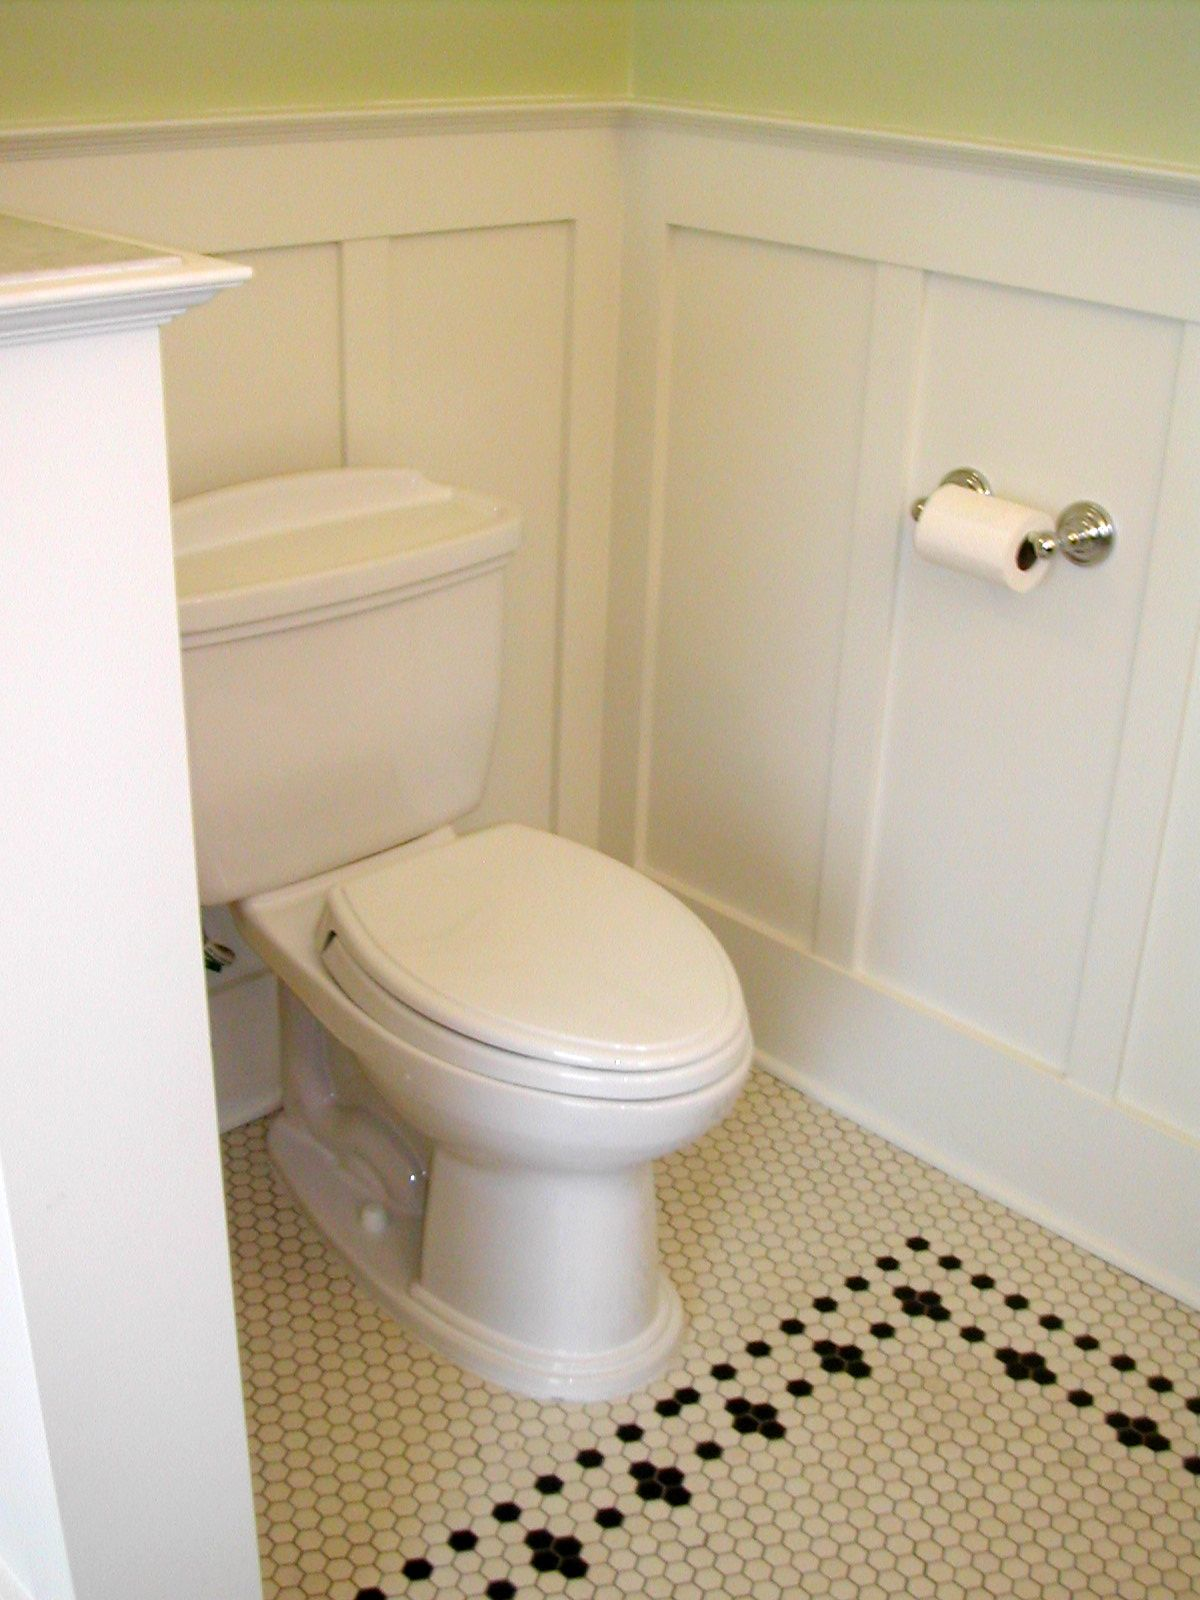 Wainscotting Hex Tile And Simple Fixtures Are Great Turn Of The - 1900 bathroom remodel